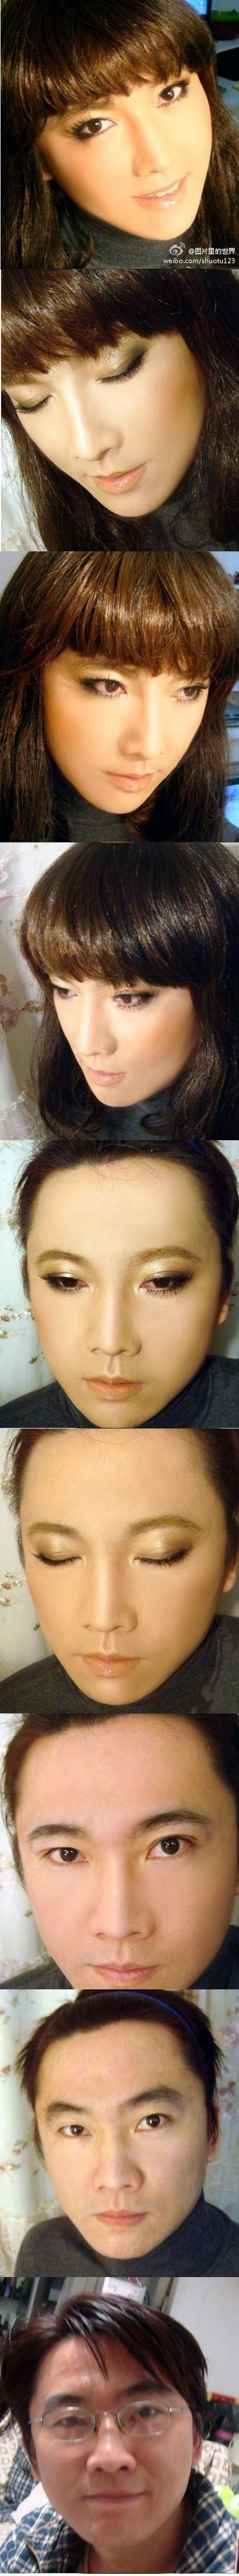 Pretty Lady? - The Power Of Make-Up